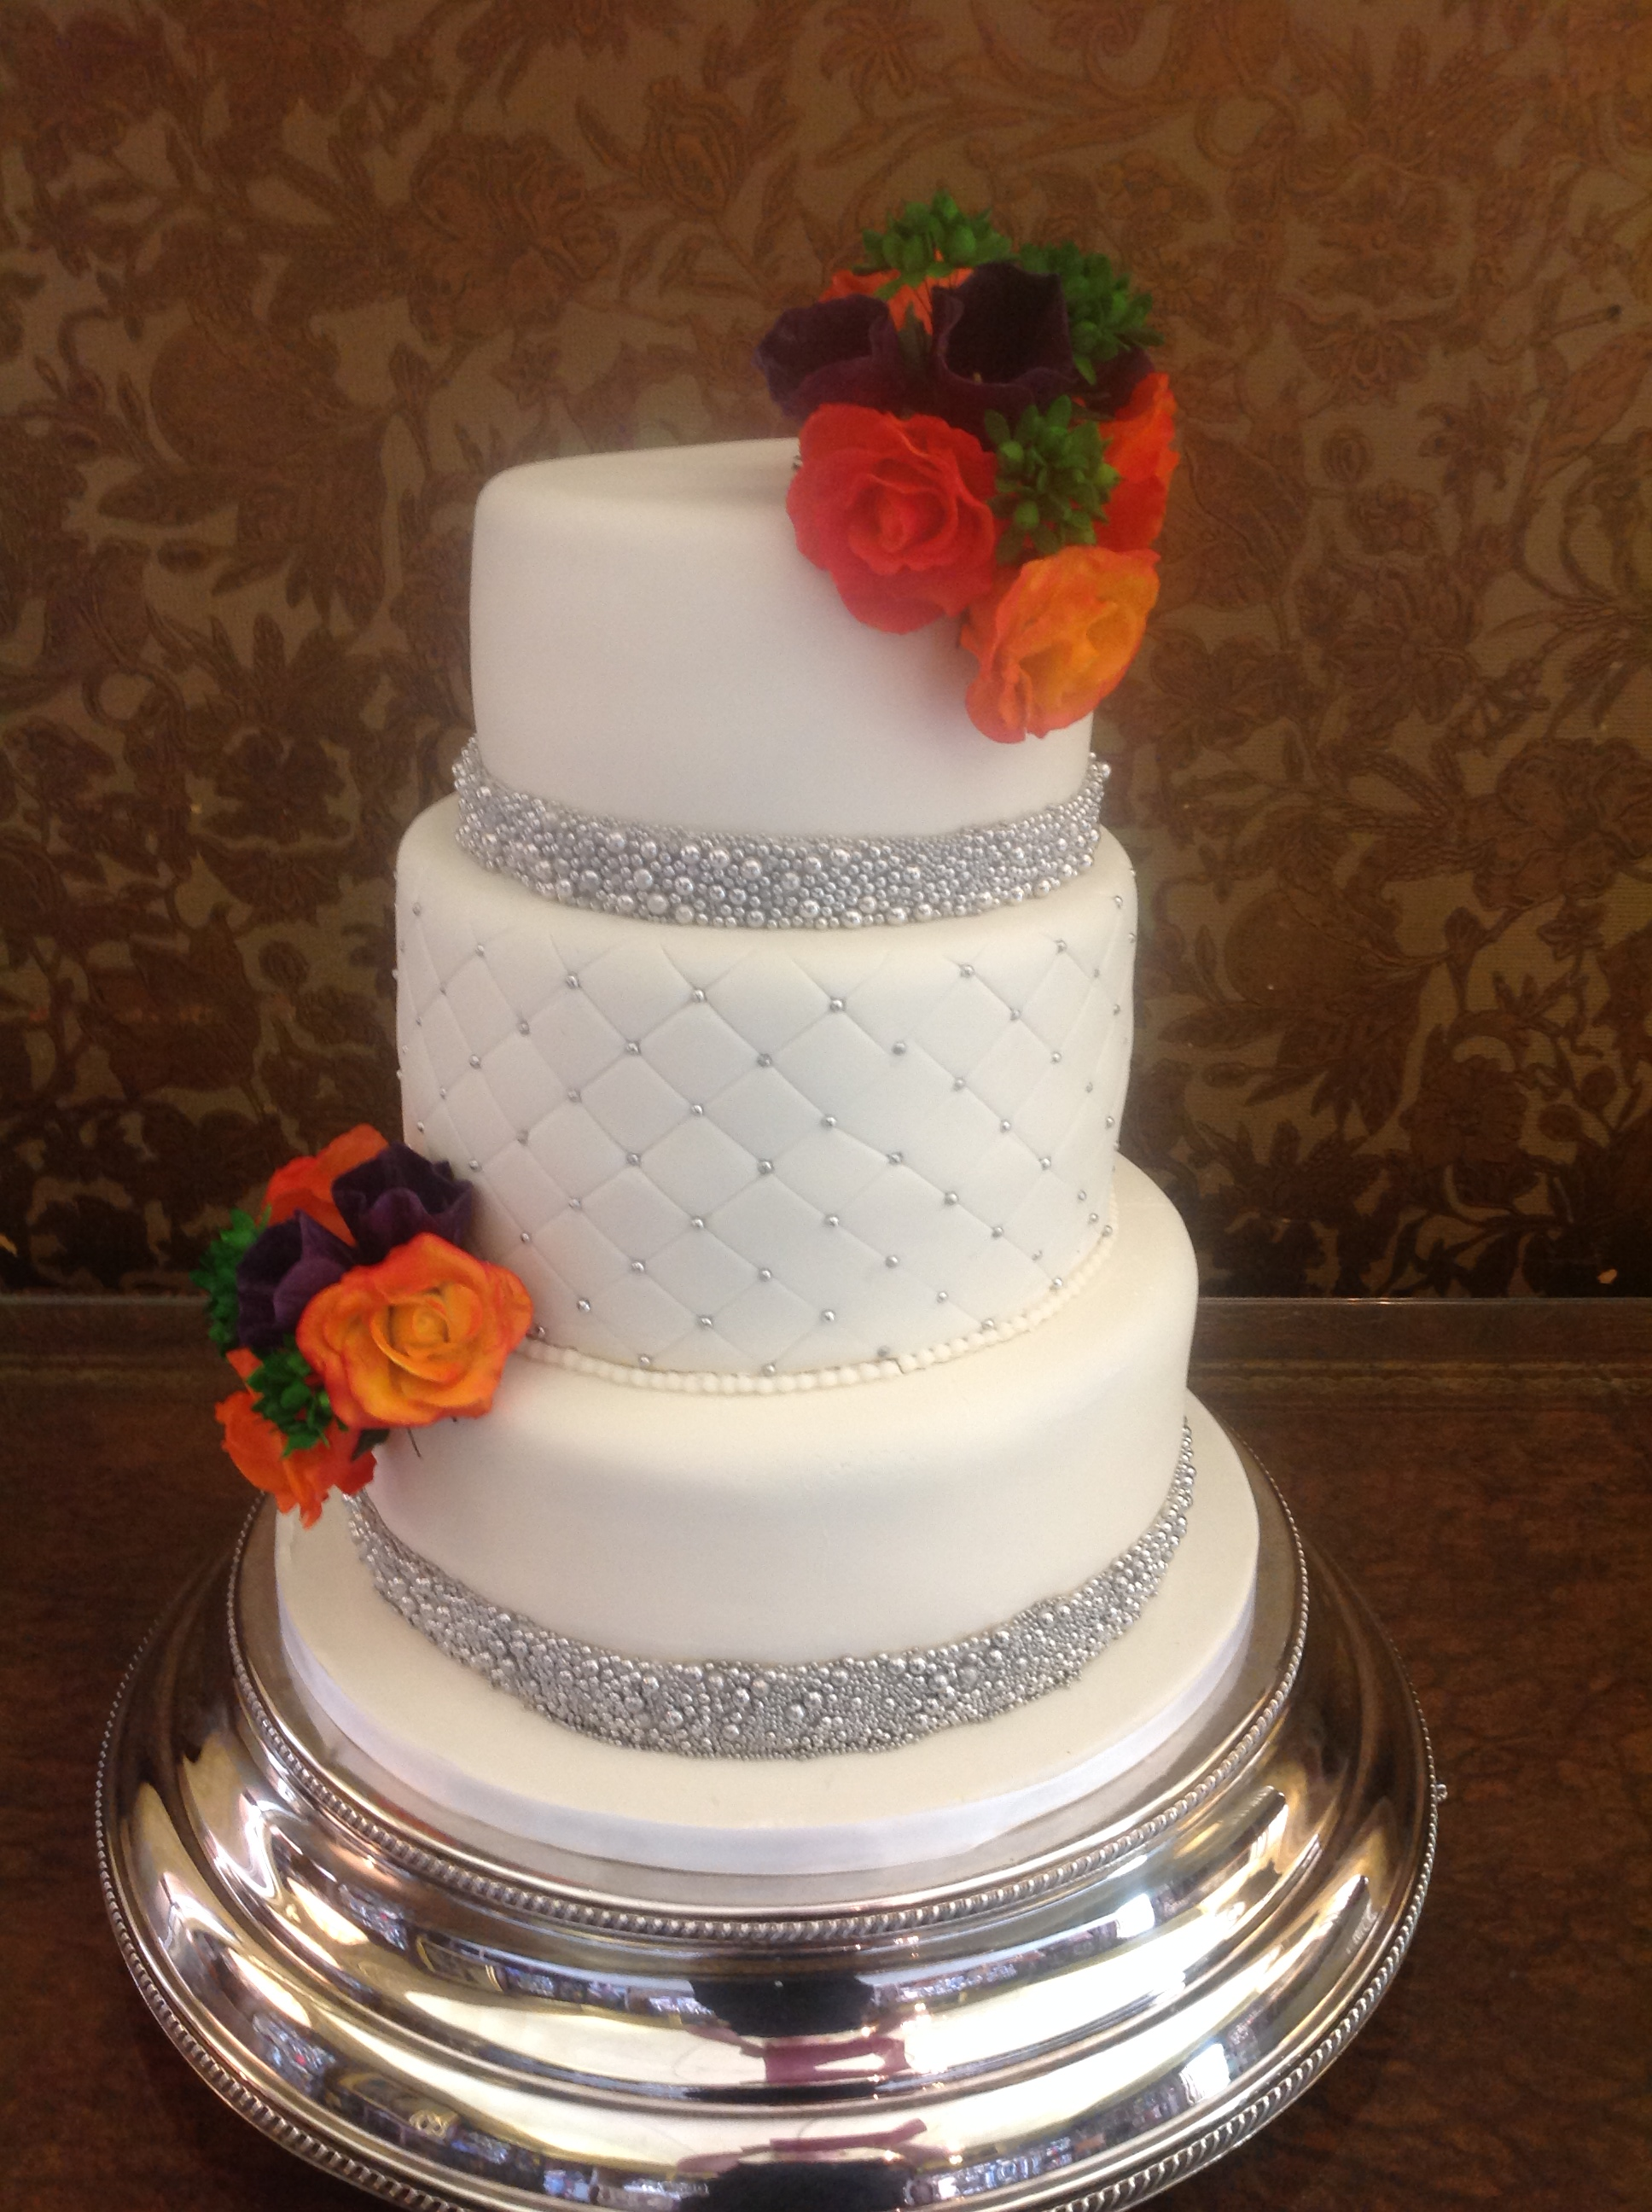 A 3 tiered stacked white cake with a posy on the top right of cherry brandy roses, Lithuansus and berries with matching posy on bottom tier. Bottom and Top tier has a band of silver balls at the base with a quilted pattern on the middle tier with silver balls